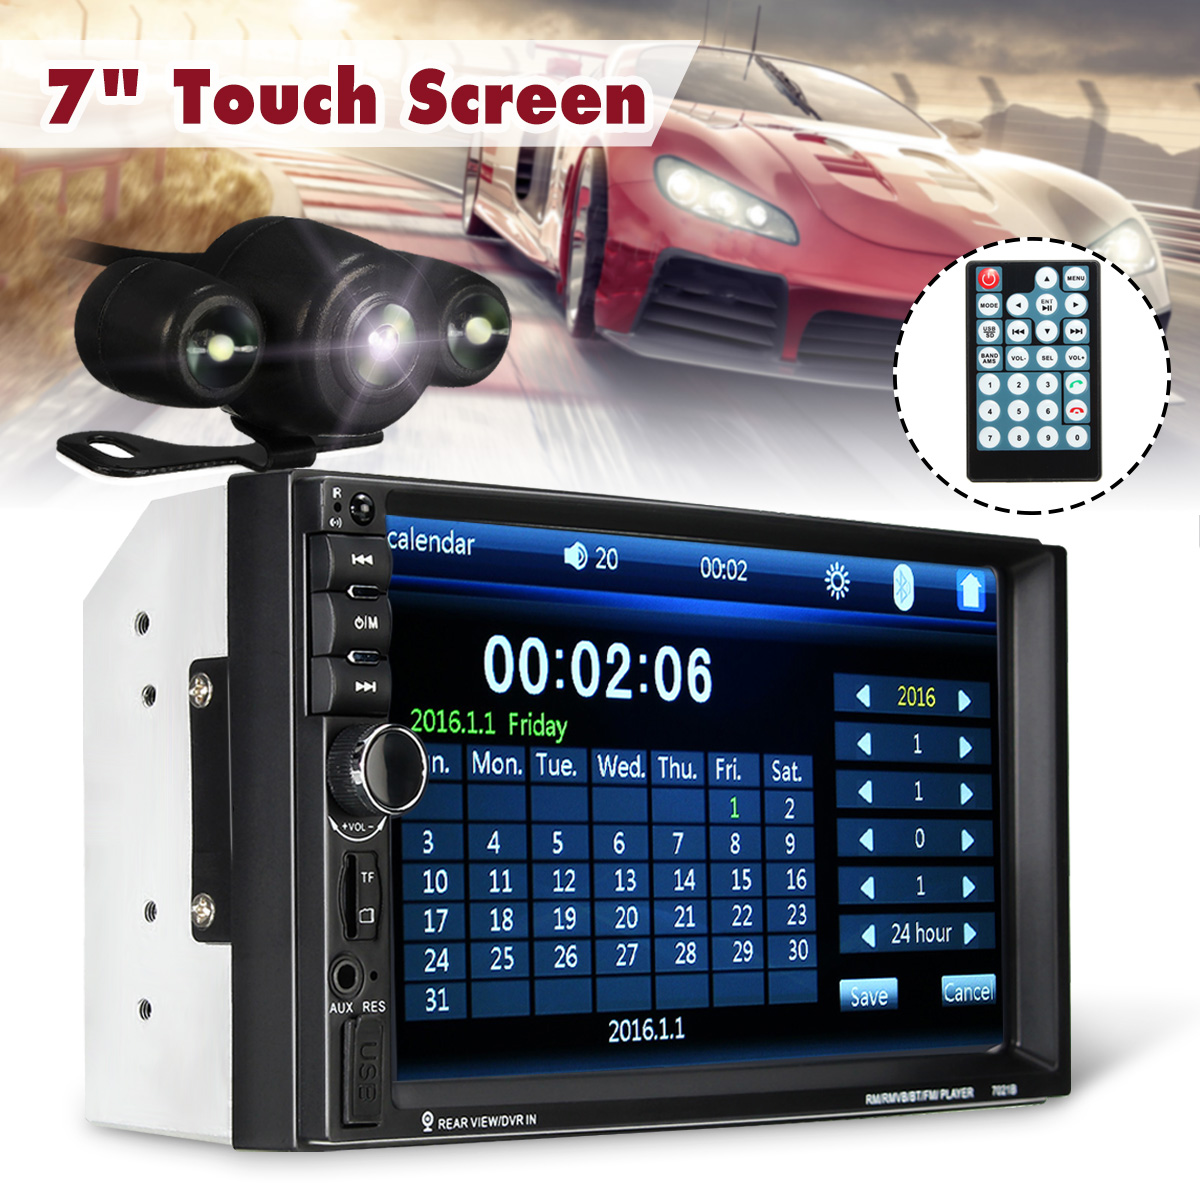 7inch Car Radio bluetooth V2.0 Car Stereo HD Touch-Screen MP5 Player SD MMC USB FM MP3/MP4 Hands-free Call Remote Control7inch Car Radio bluetooth V2.0 Car Stereo HD Touch-Screen MP5 Player SD MMC USB FM MP3/MP4 Hands-free Call Remote Control